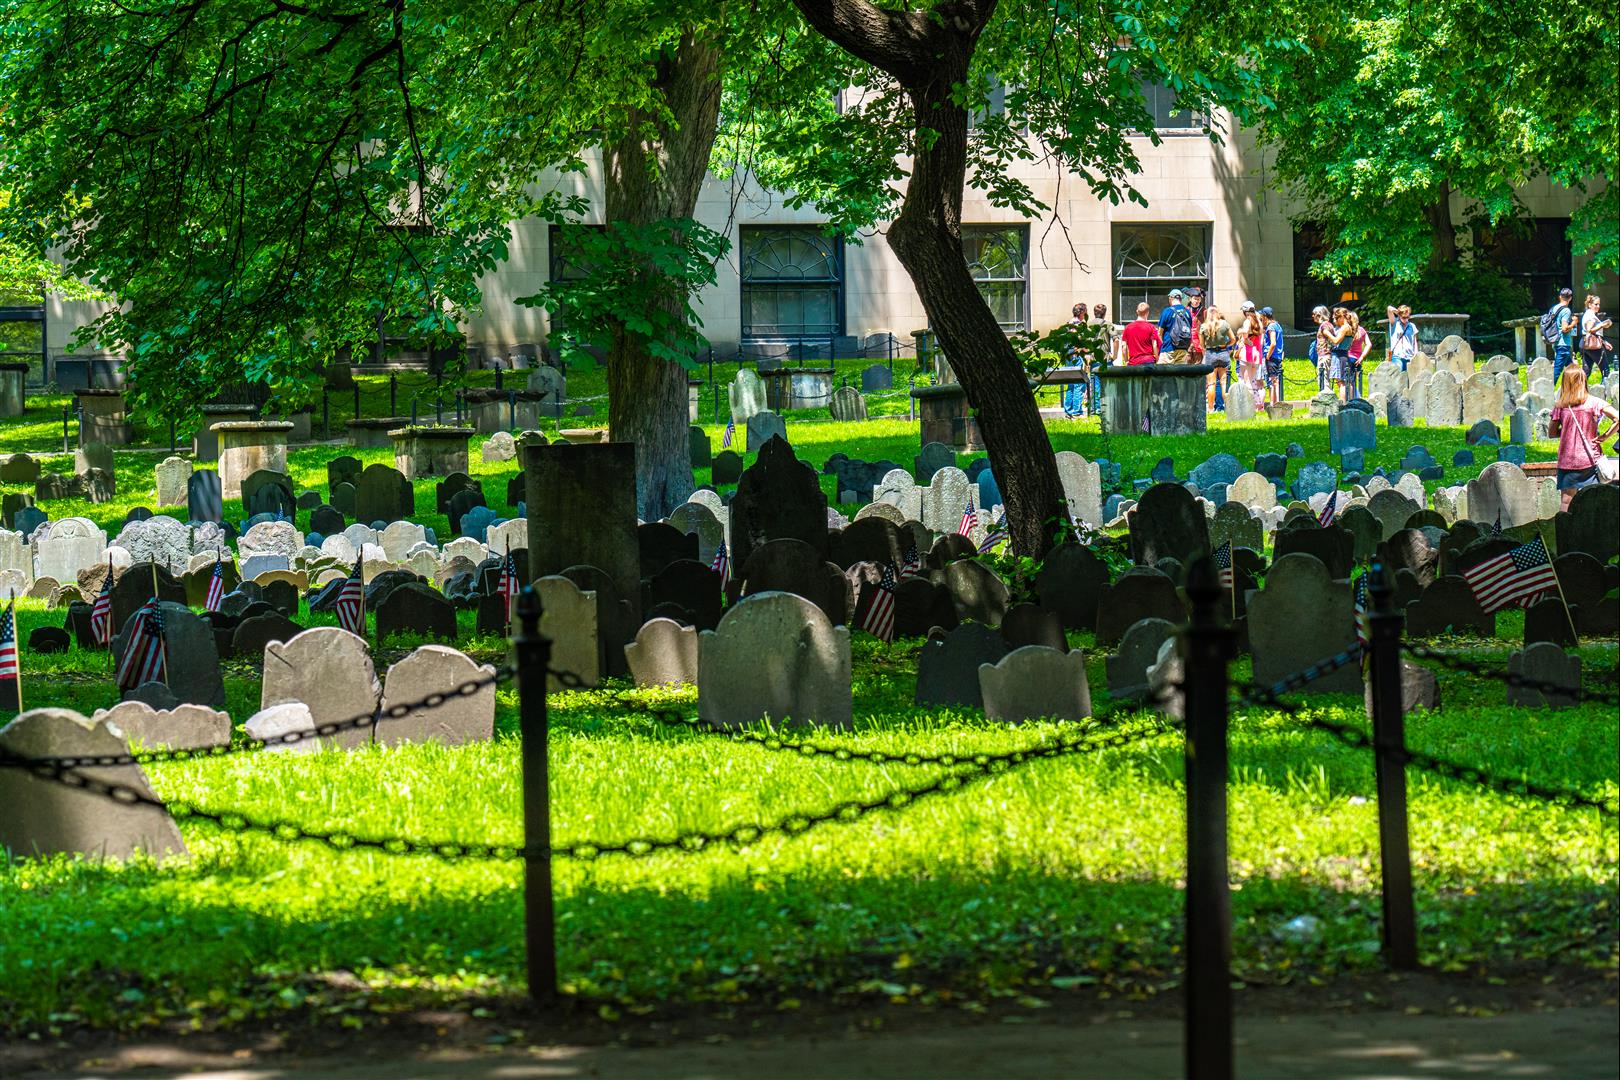 穀倉墓地 (Granary Burying Ground)